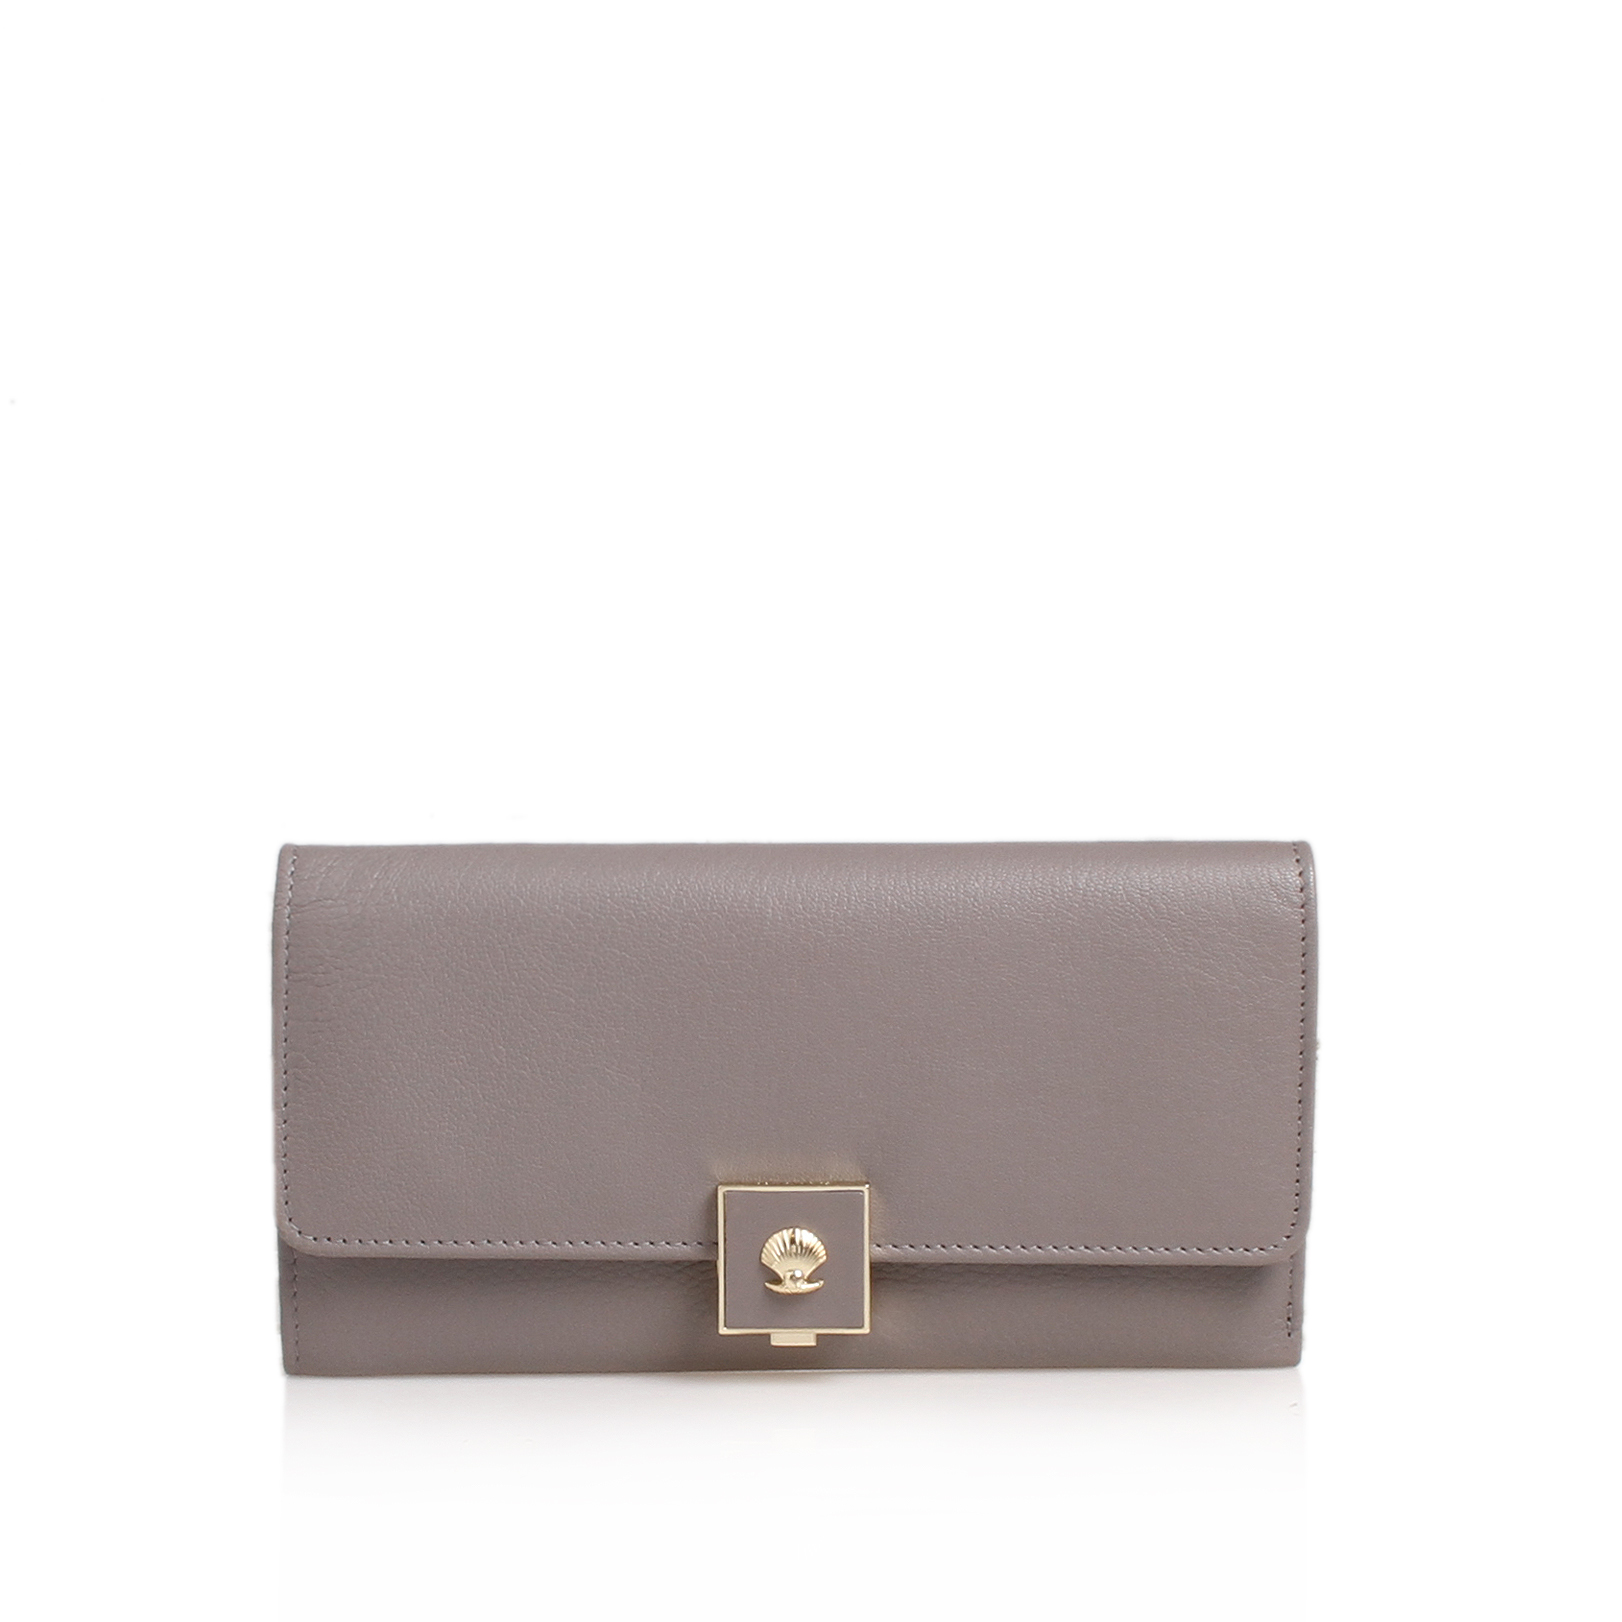 VERITY LEATHER PURSE